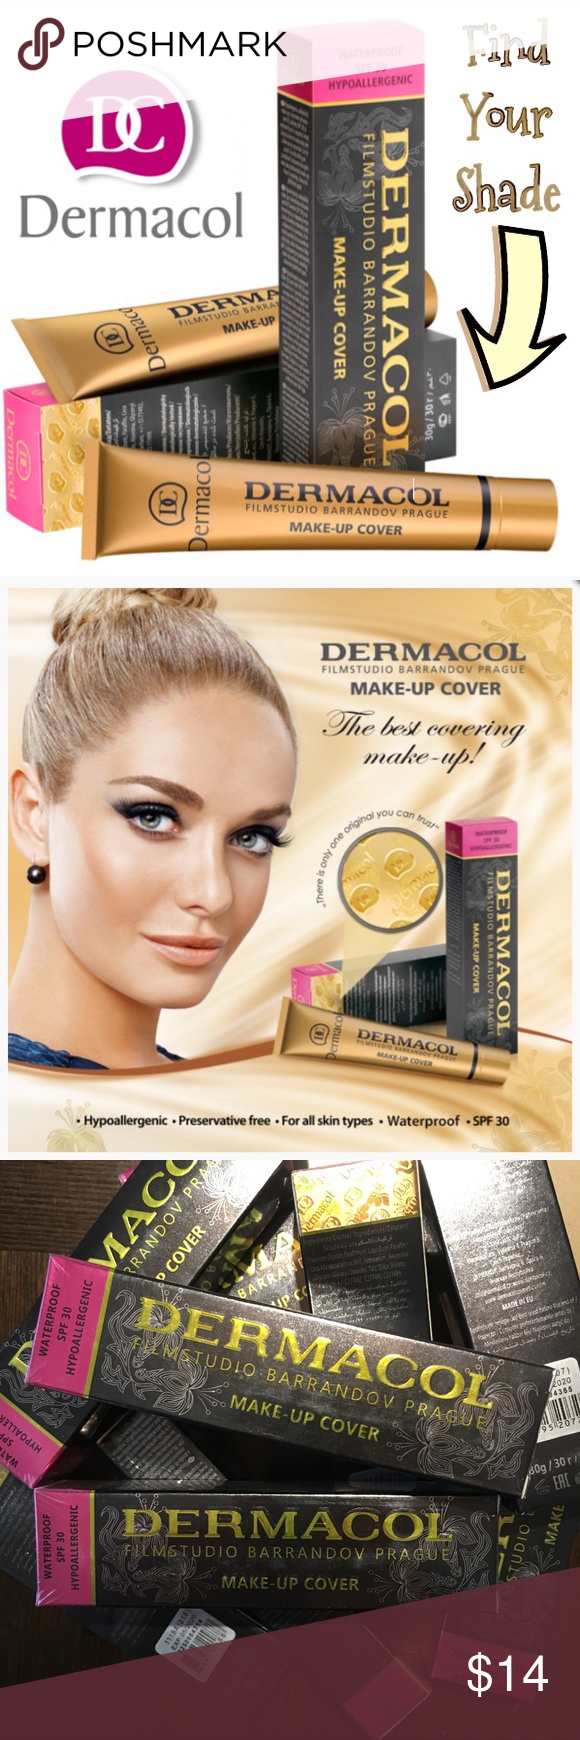 NIB Authentic Dermacol Foundation Makeup Cover Face and